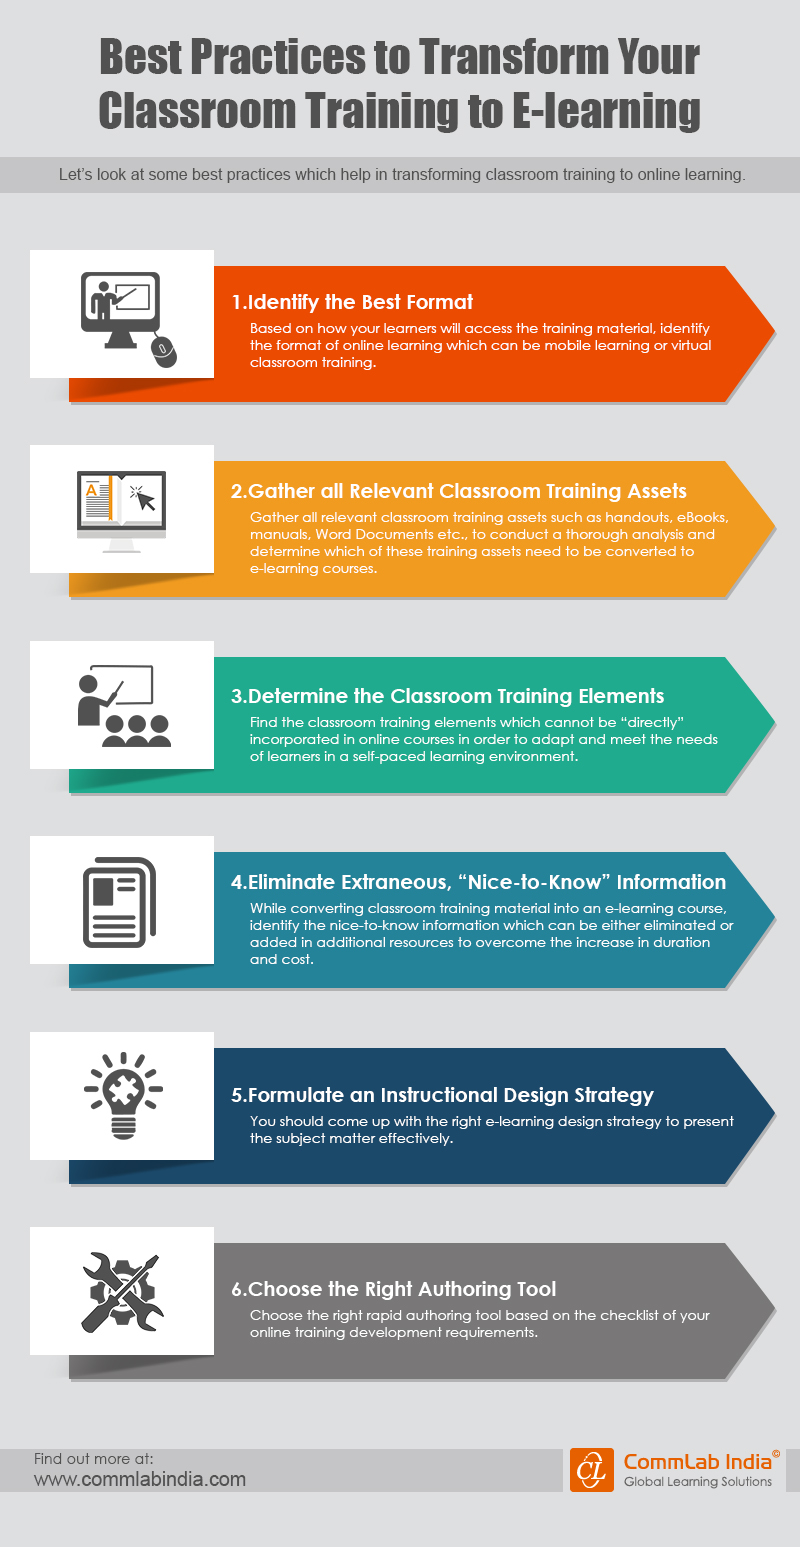 Best Practices to Transform Your Classroom Training to E-learning [Infographic]